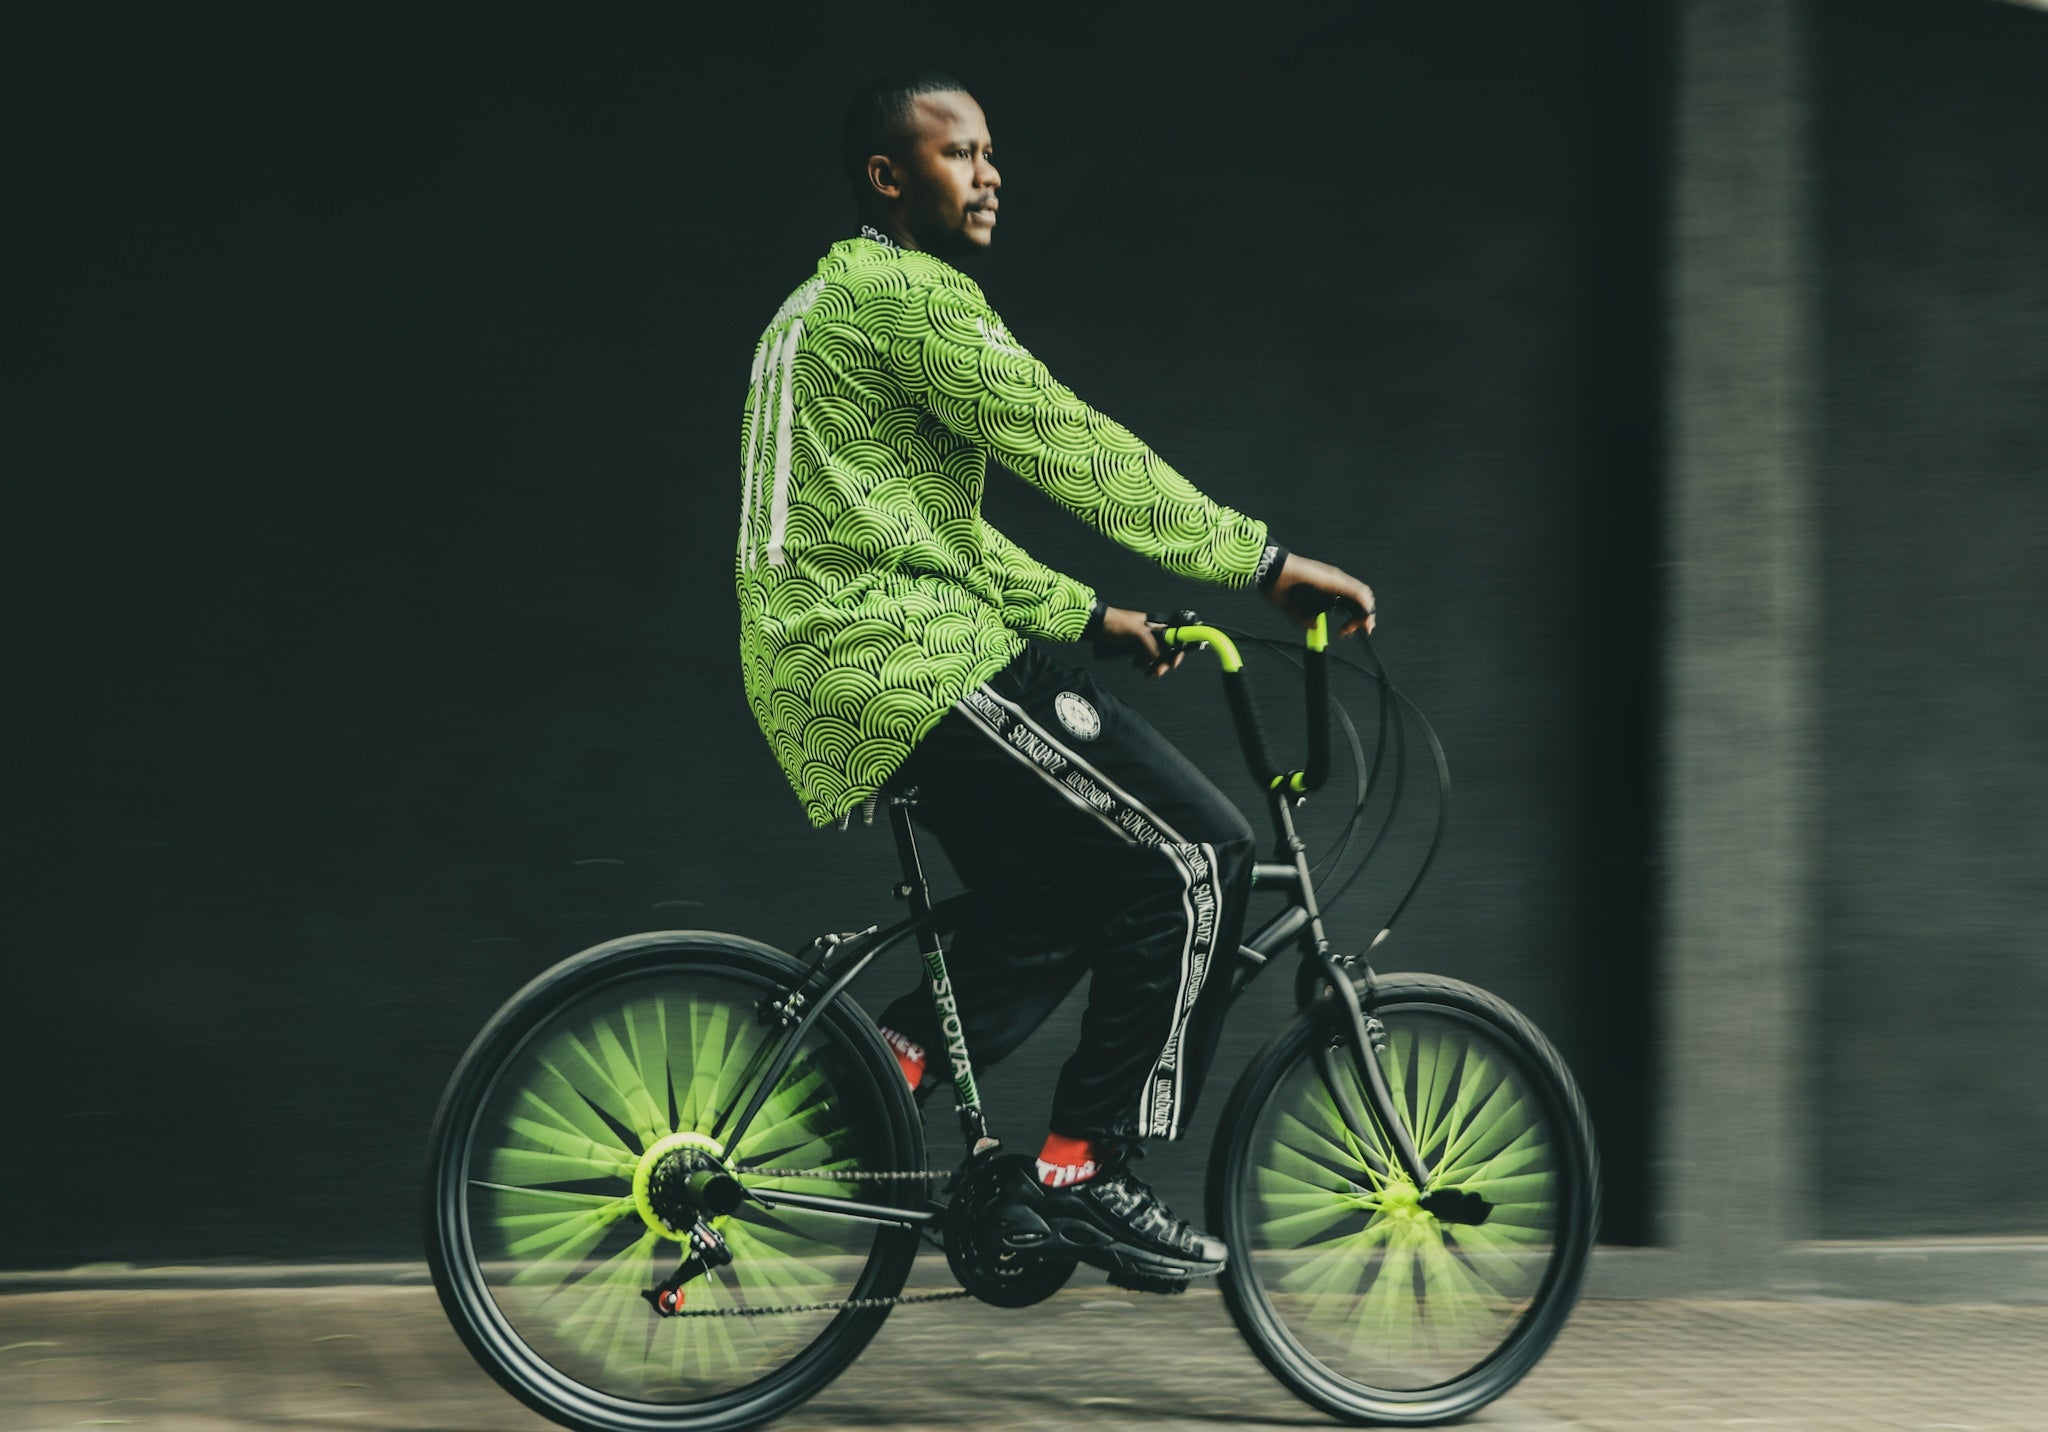 WIN a custom Spova Bicycle Cruiser - subscribe to our